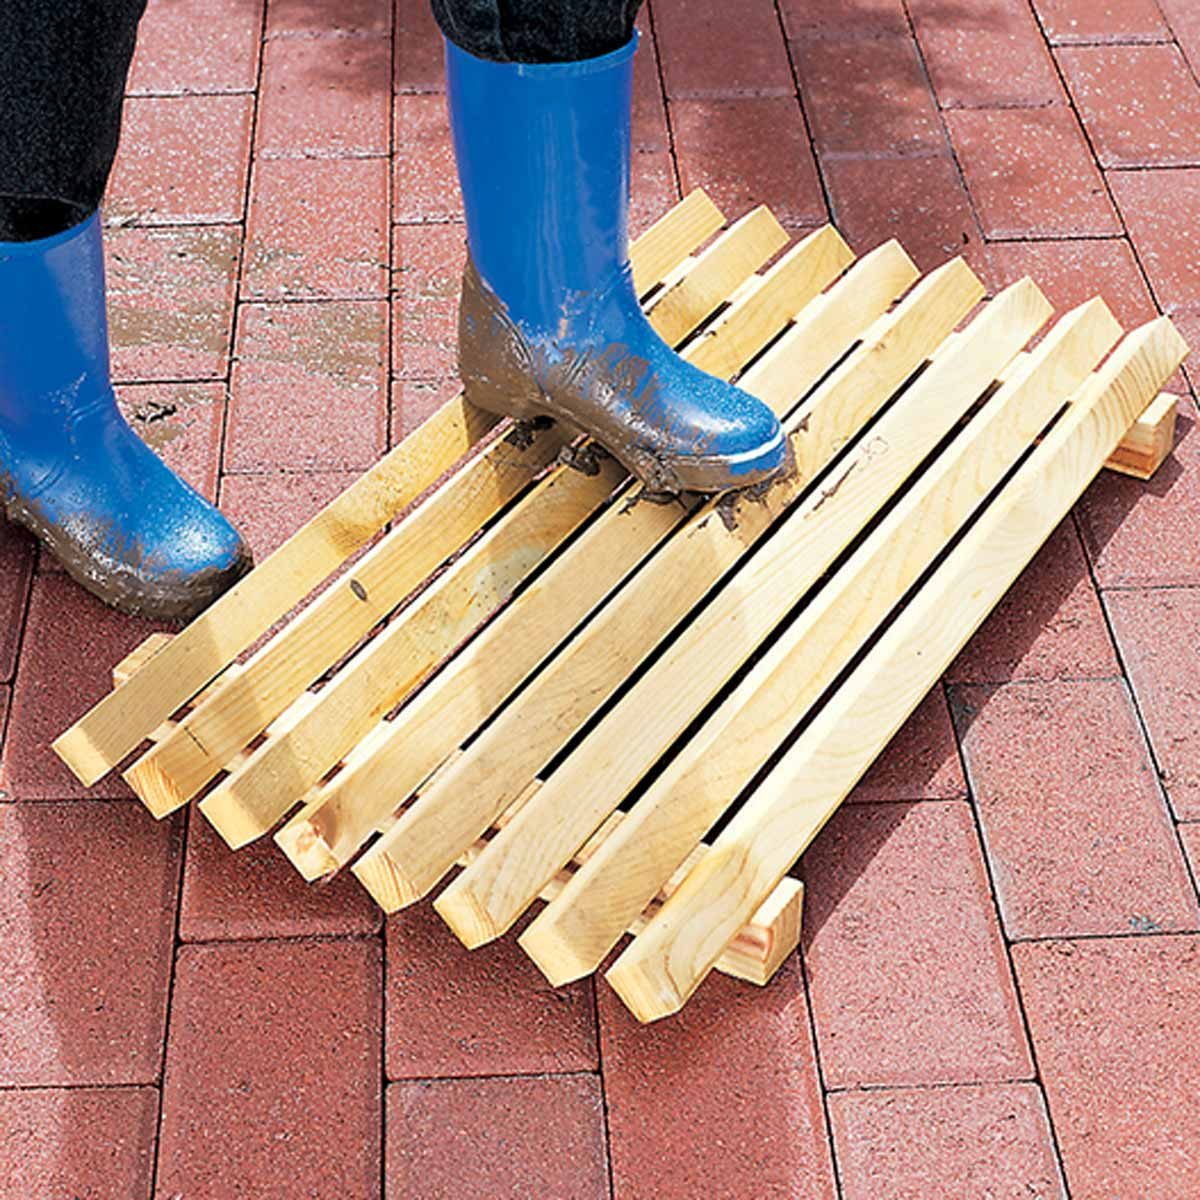 19 Surprisingly Easy Woodworking Projects for Beginners ... on Cool Small Woodworking Projects  id=72675